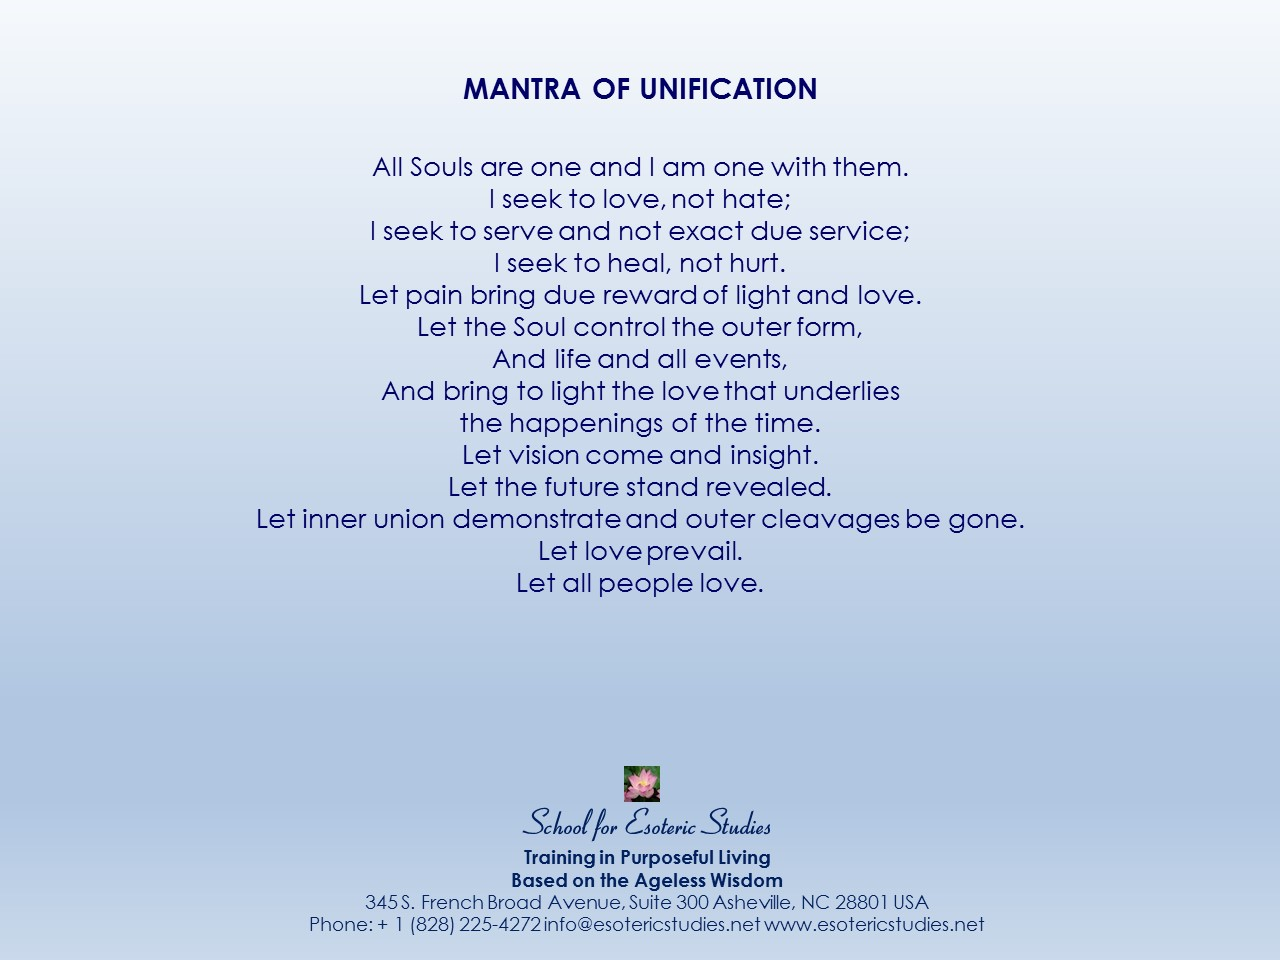 Mantra of Unification